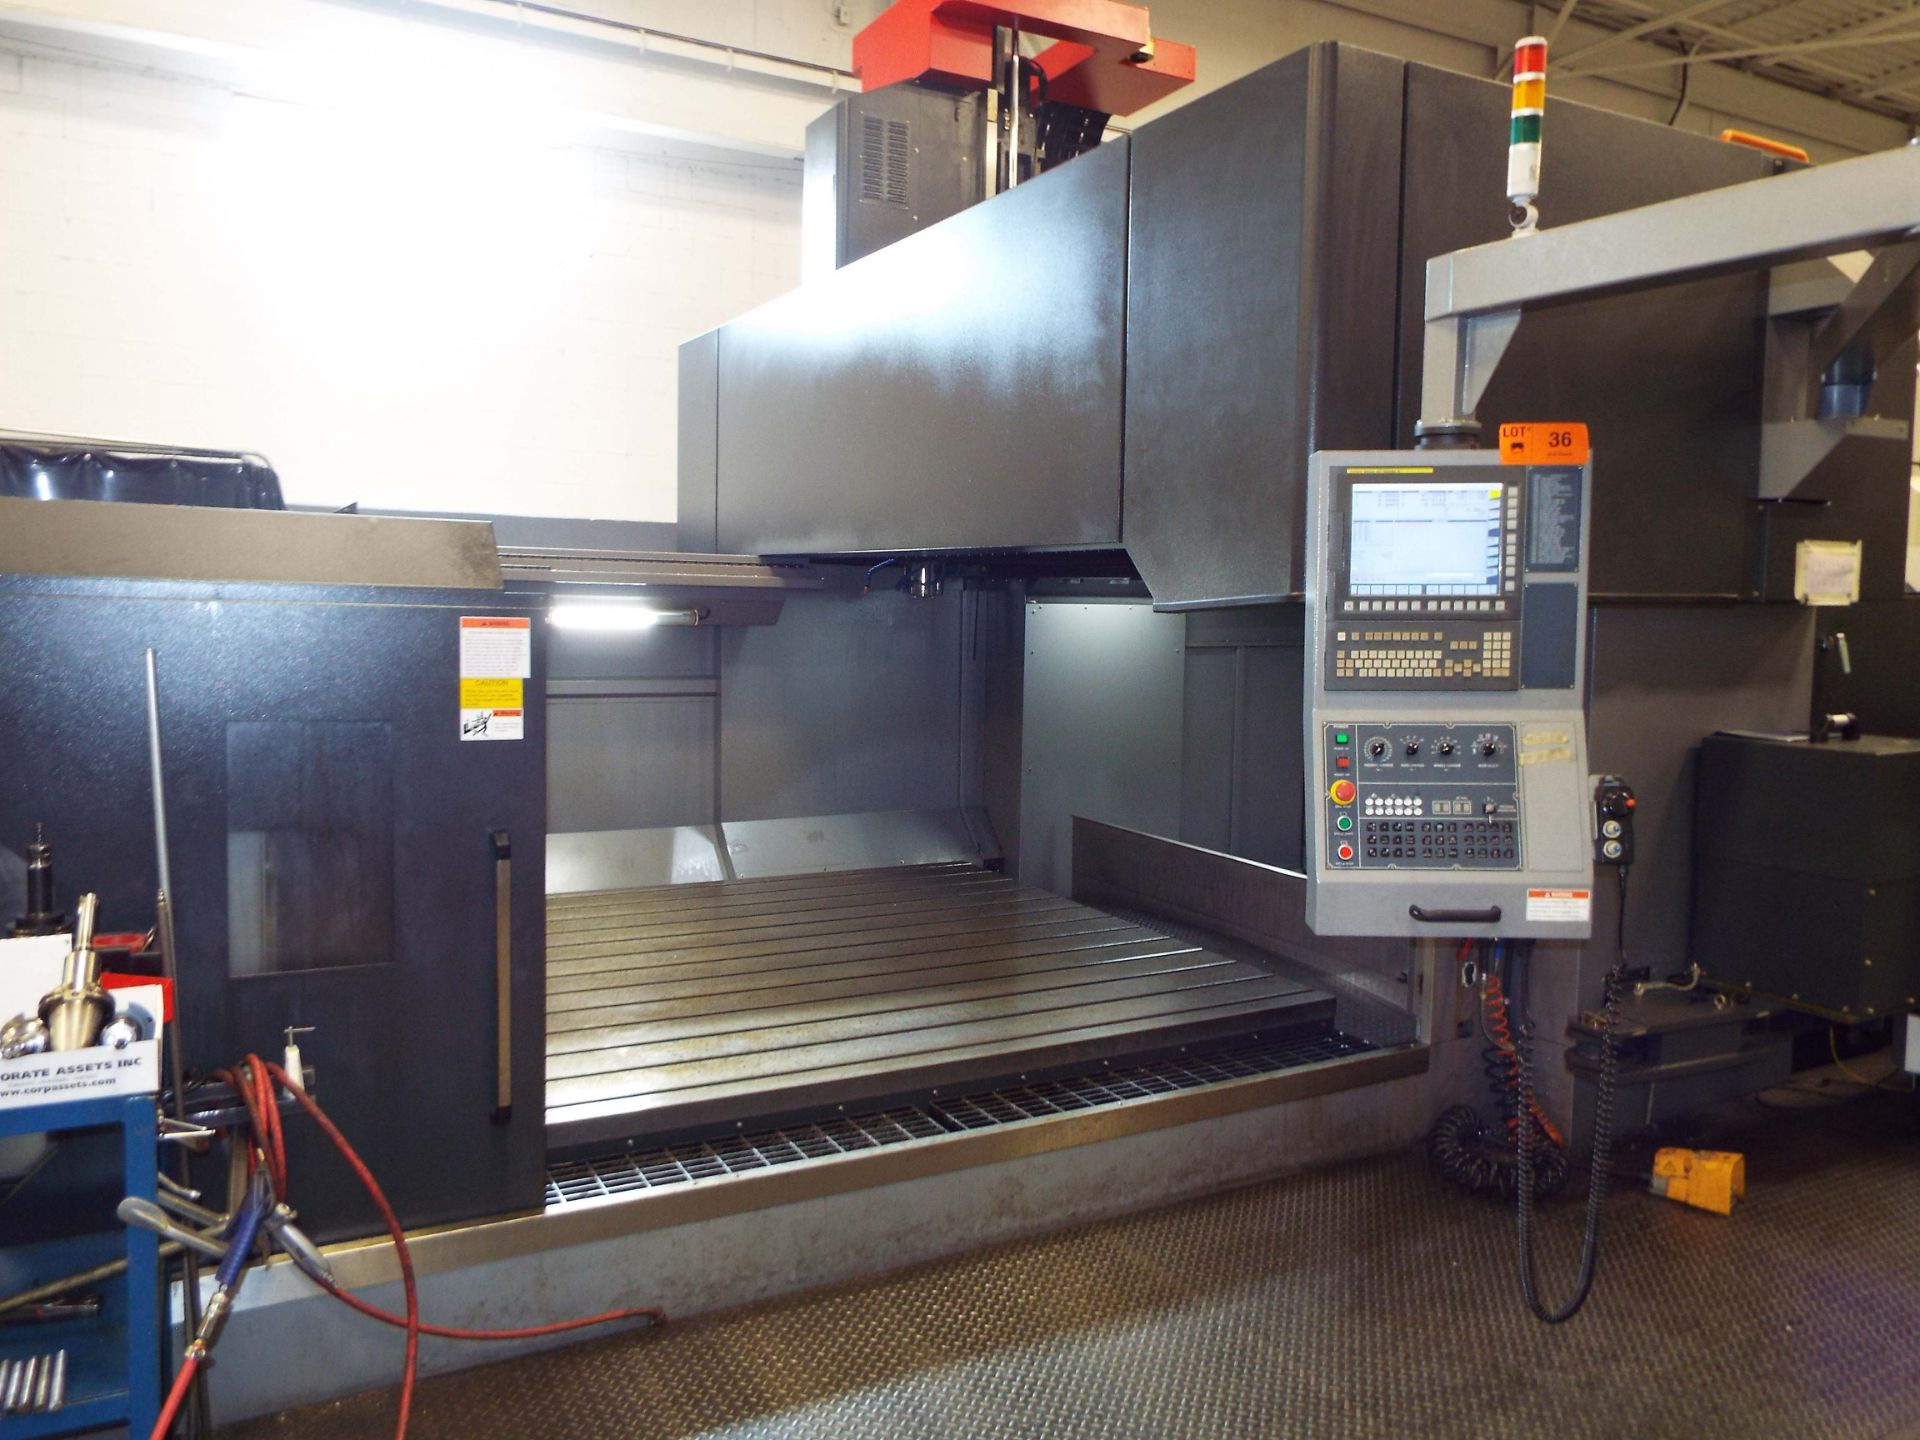 KAFO (INSTALLED NEW IN 2018) BMC-3127 CNC DOUBLE COLUMN VERTICAL MACHINING CENTER WITH FANUC - Image 12 of 13